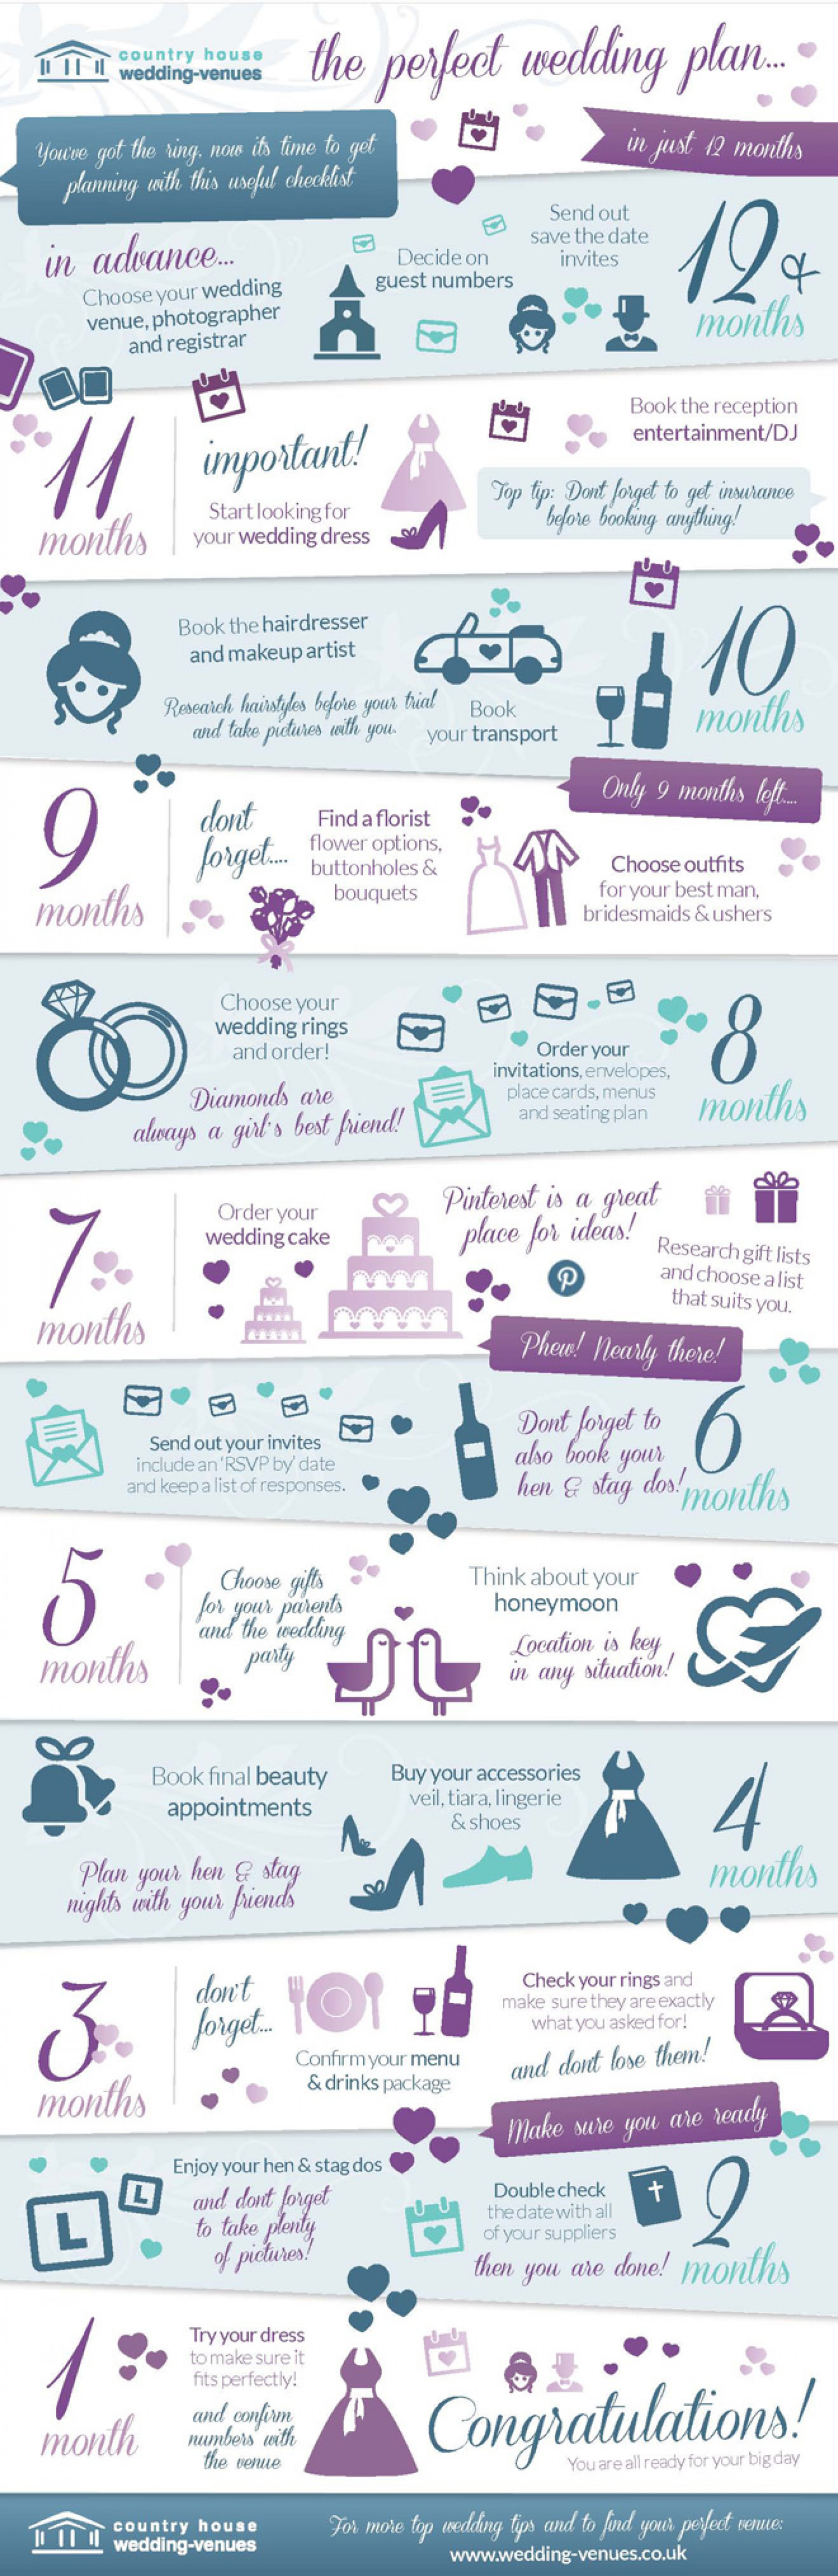 The perfect wedding plan in just 12 months visual the perfect wedding plan in just 12 months infographic junglespirit Choice Image